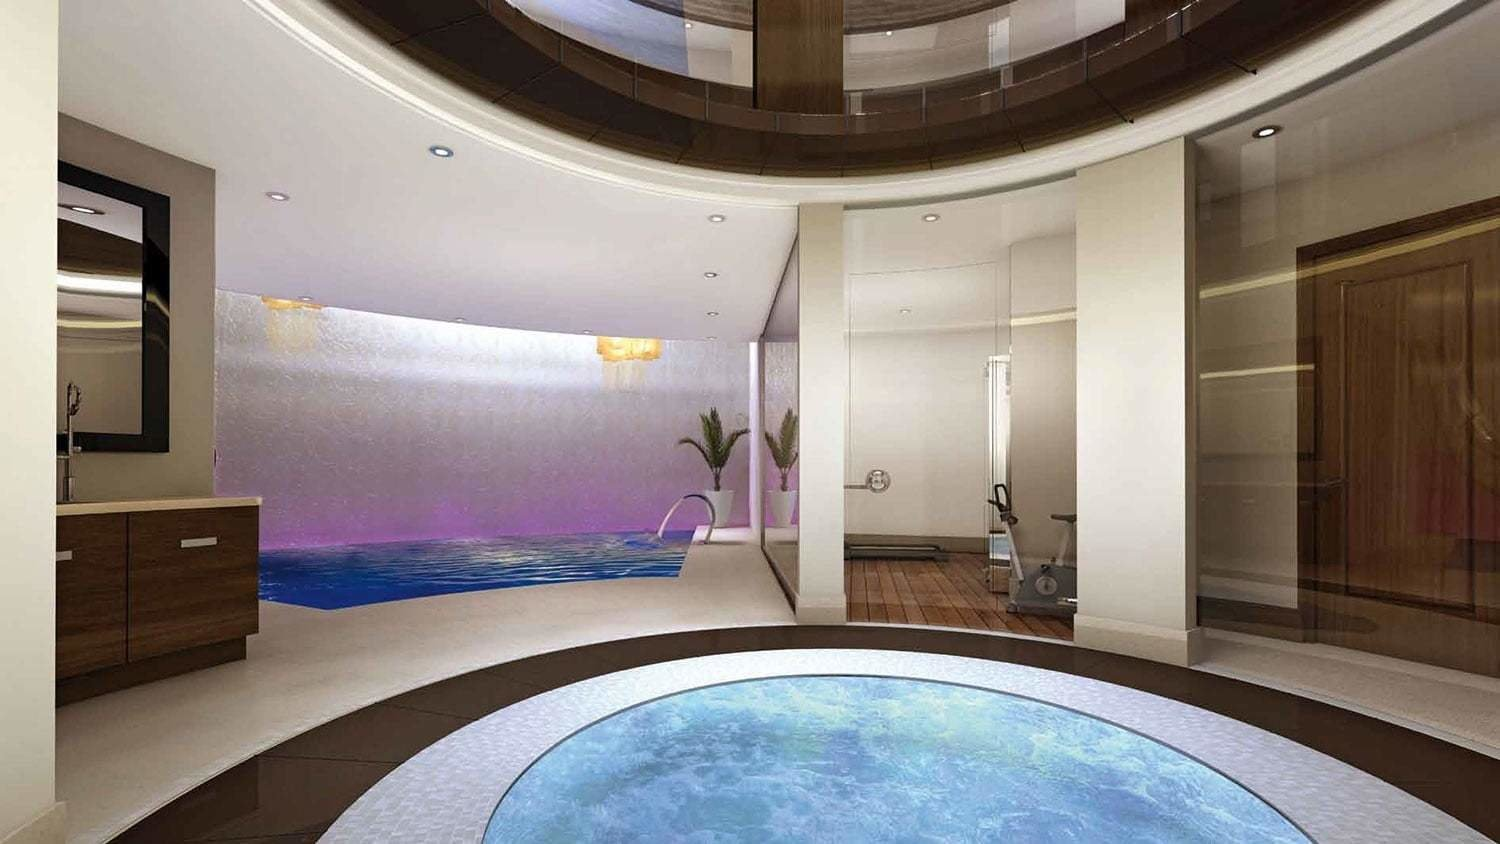 Best Slide From Bedroom To Subterranean Pool In This Posh Underground Mansion The Manual The Manual With Pictures